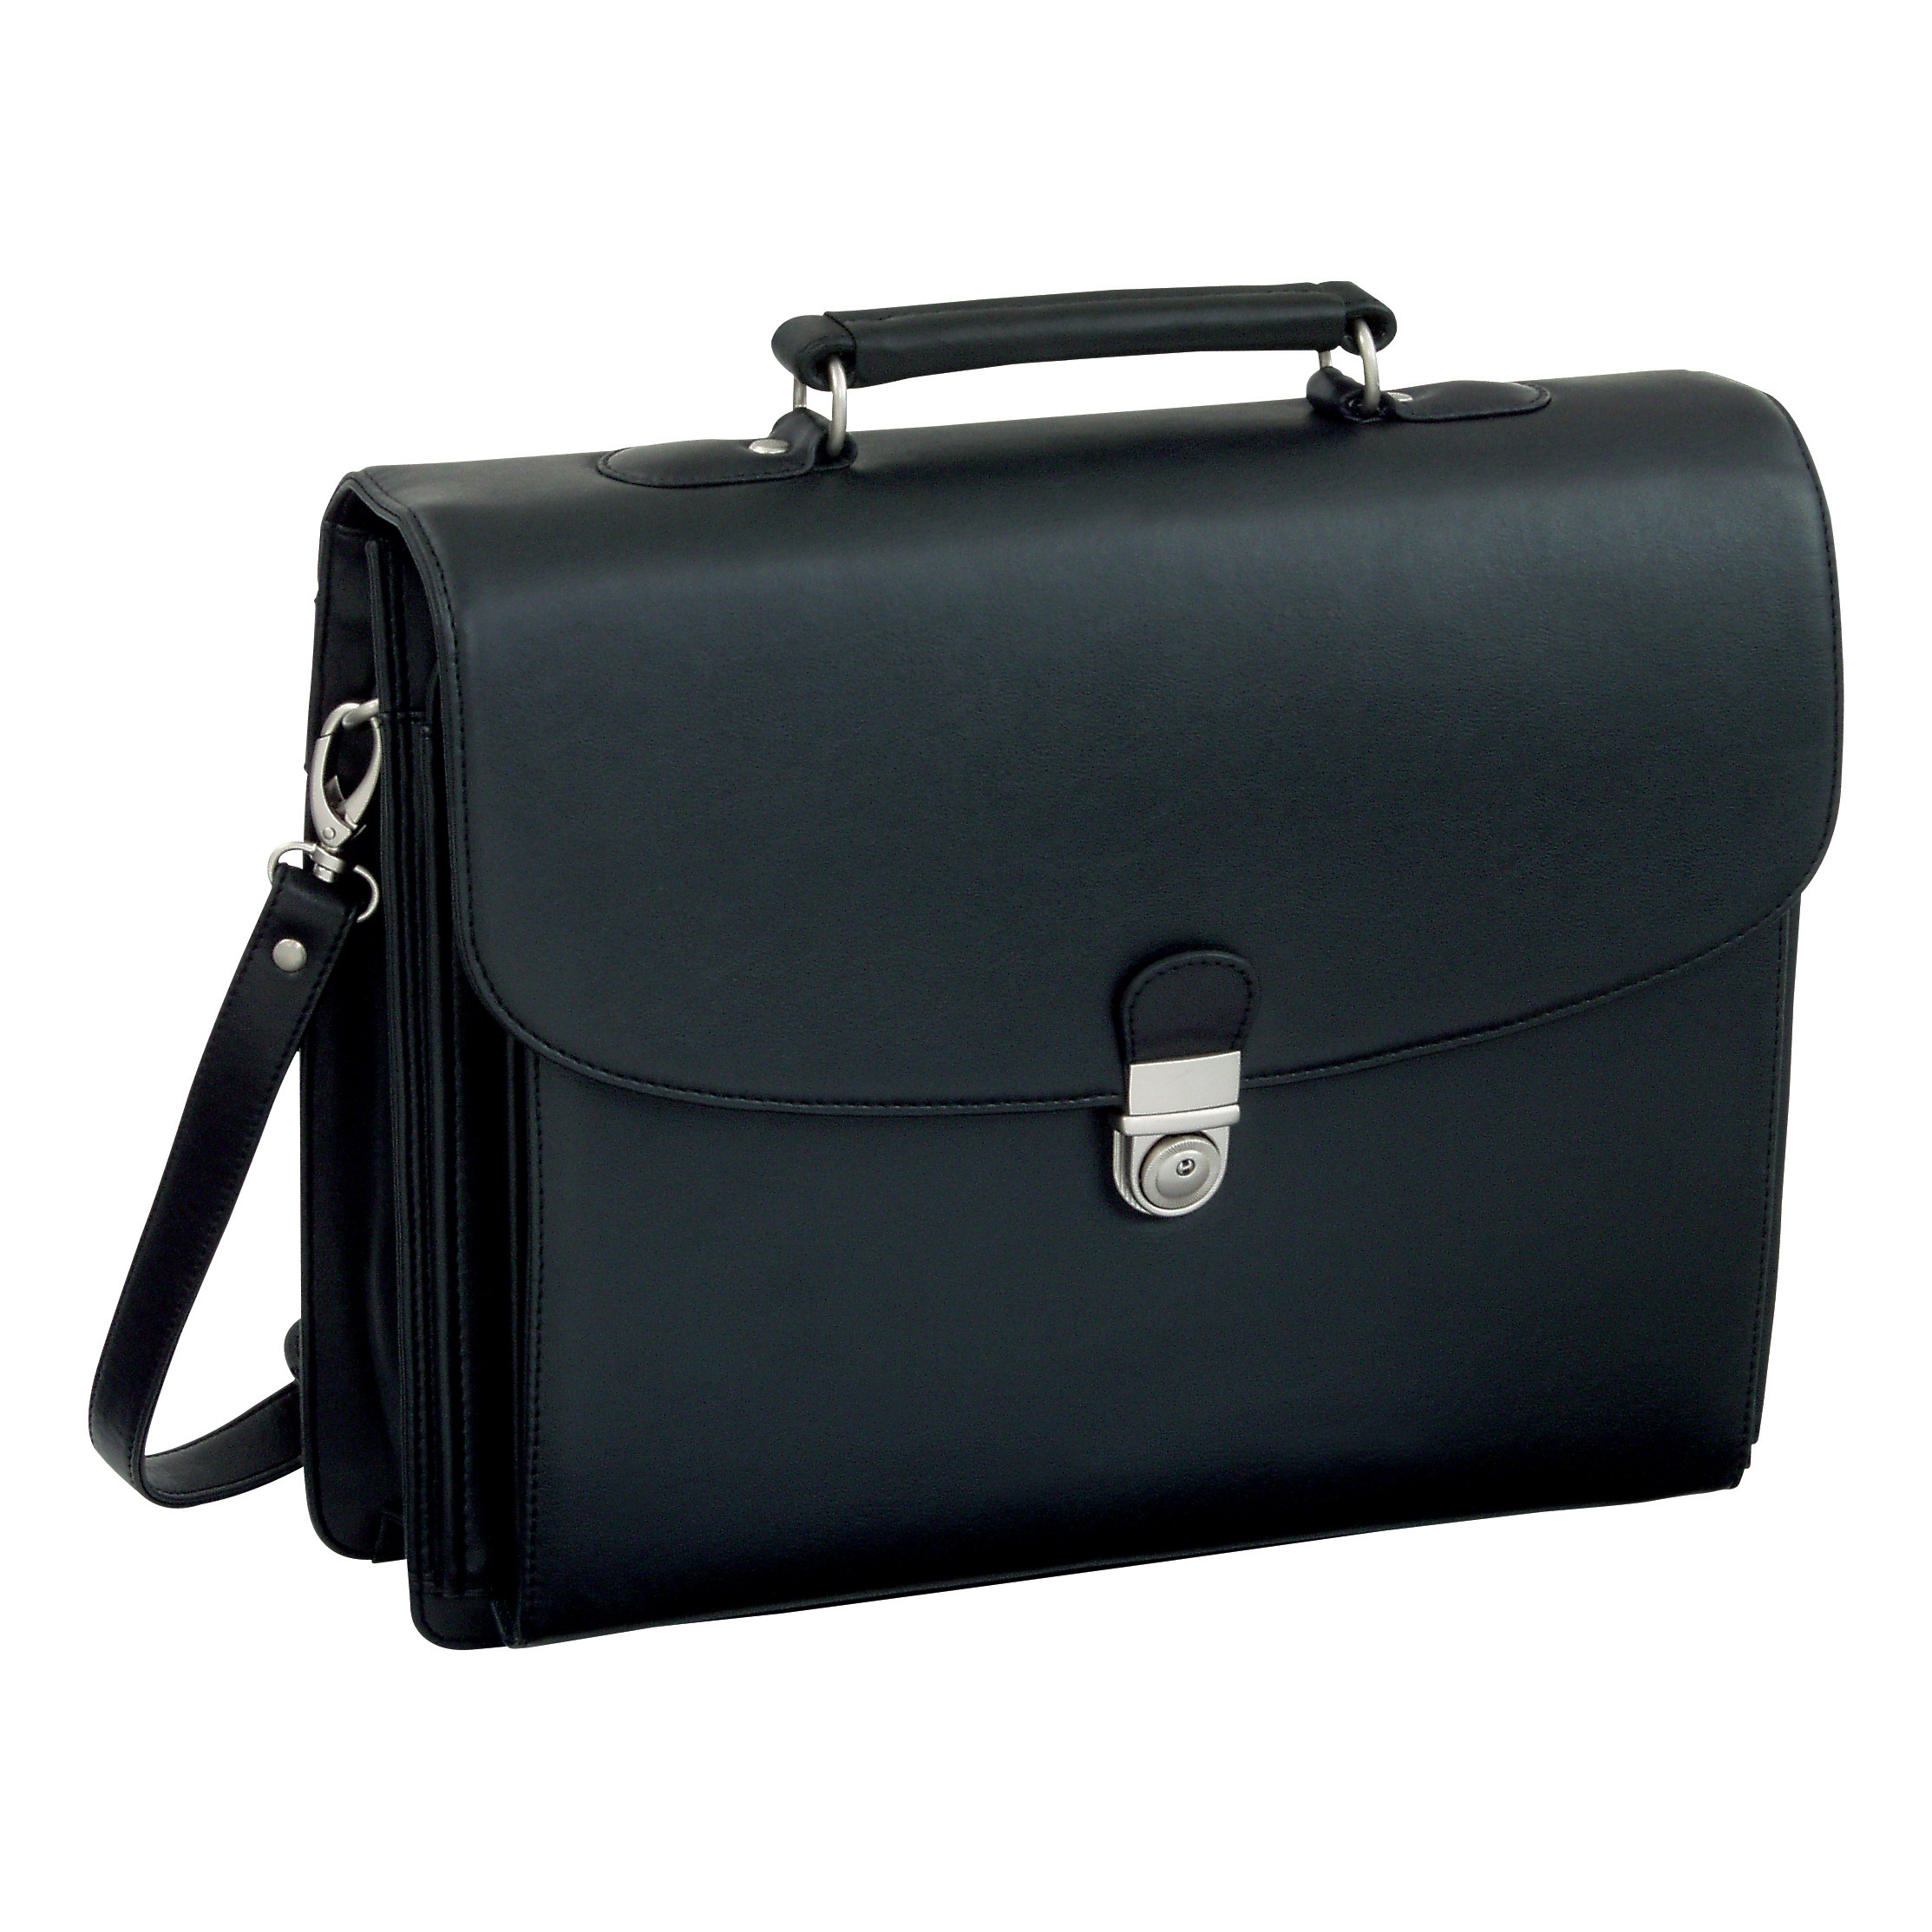 Briefcases Alassio Forte Briefcase with Shoulder Strap 5 Document Sections Leather-look Black Ref 92011